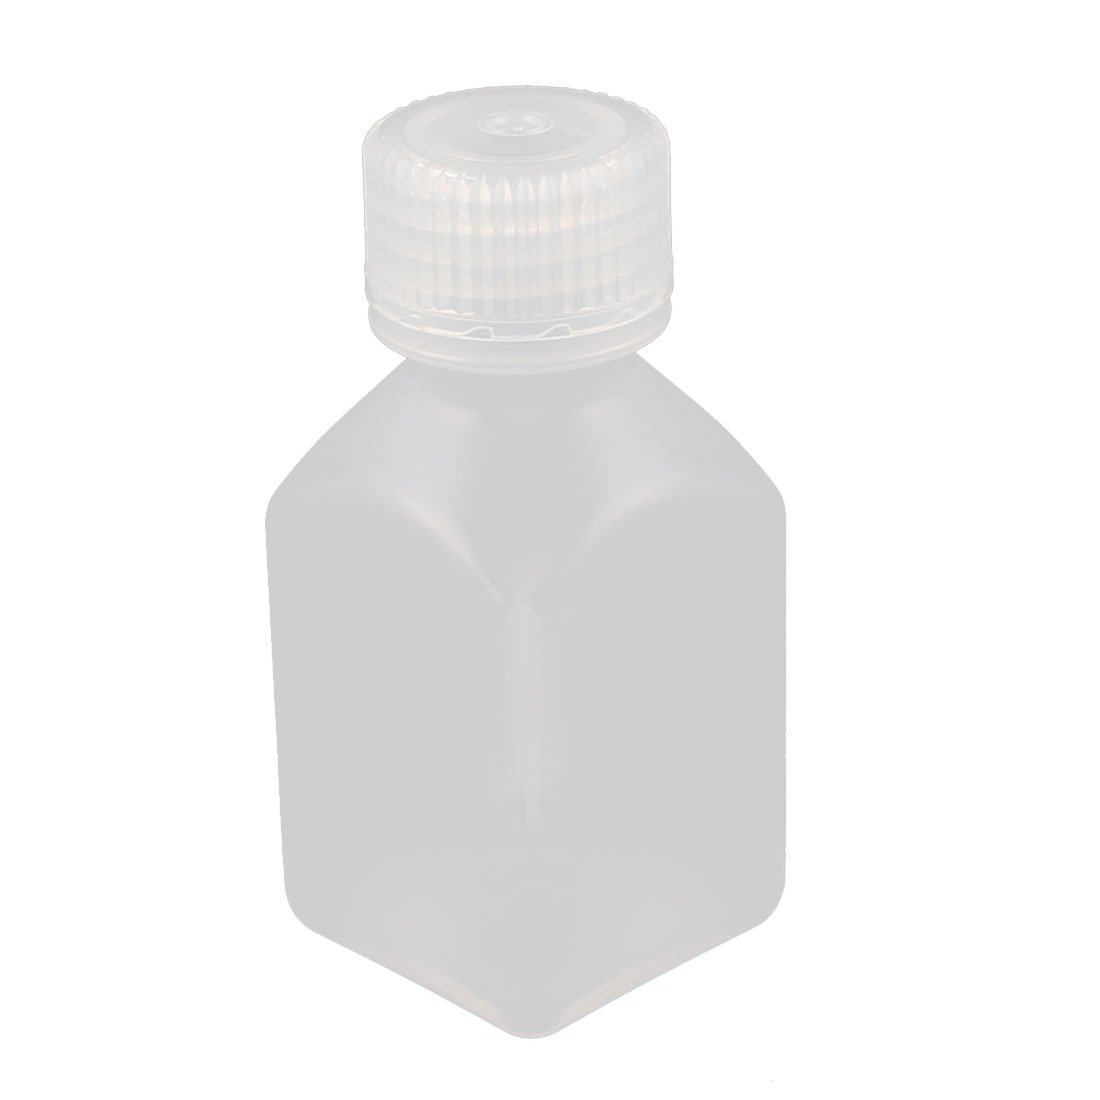 uxcell 50ml PP Square Wide Mouth Seal Reagent Bottle Chemical Sample Bottle